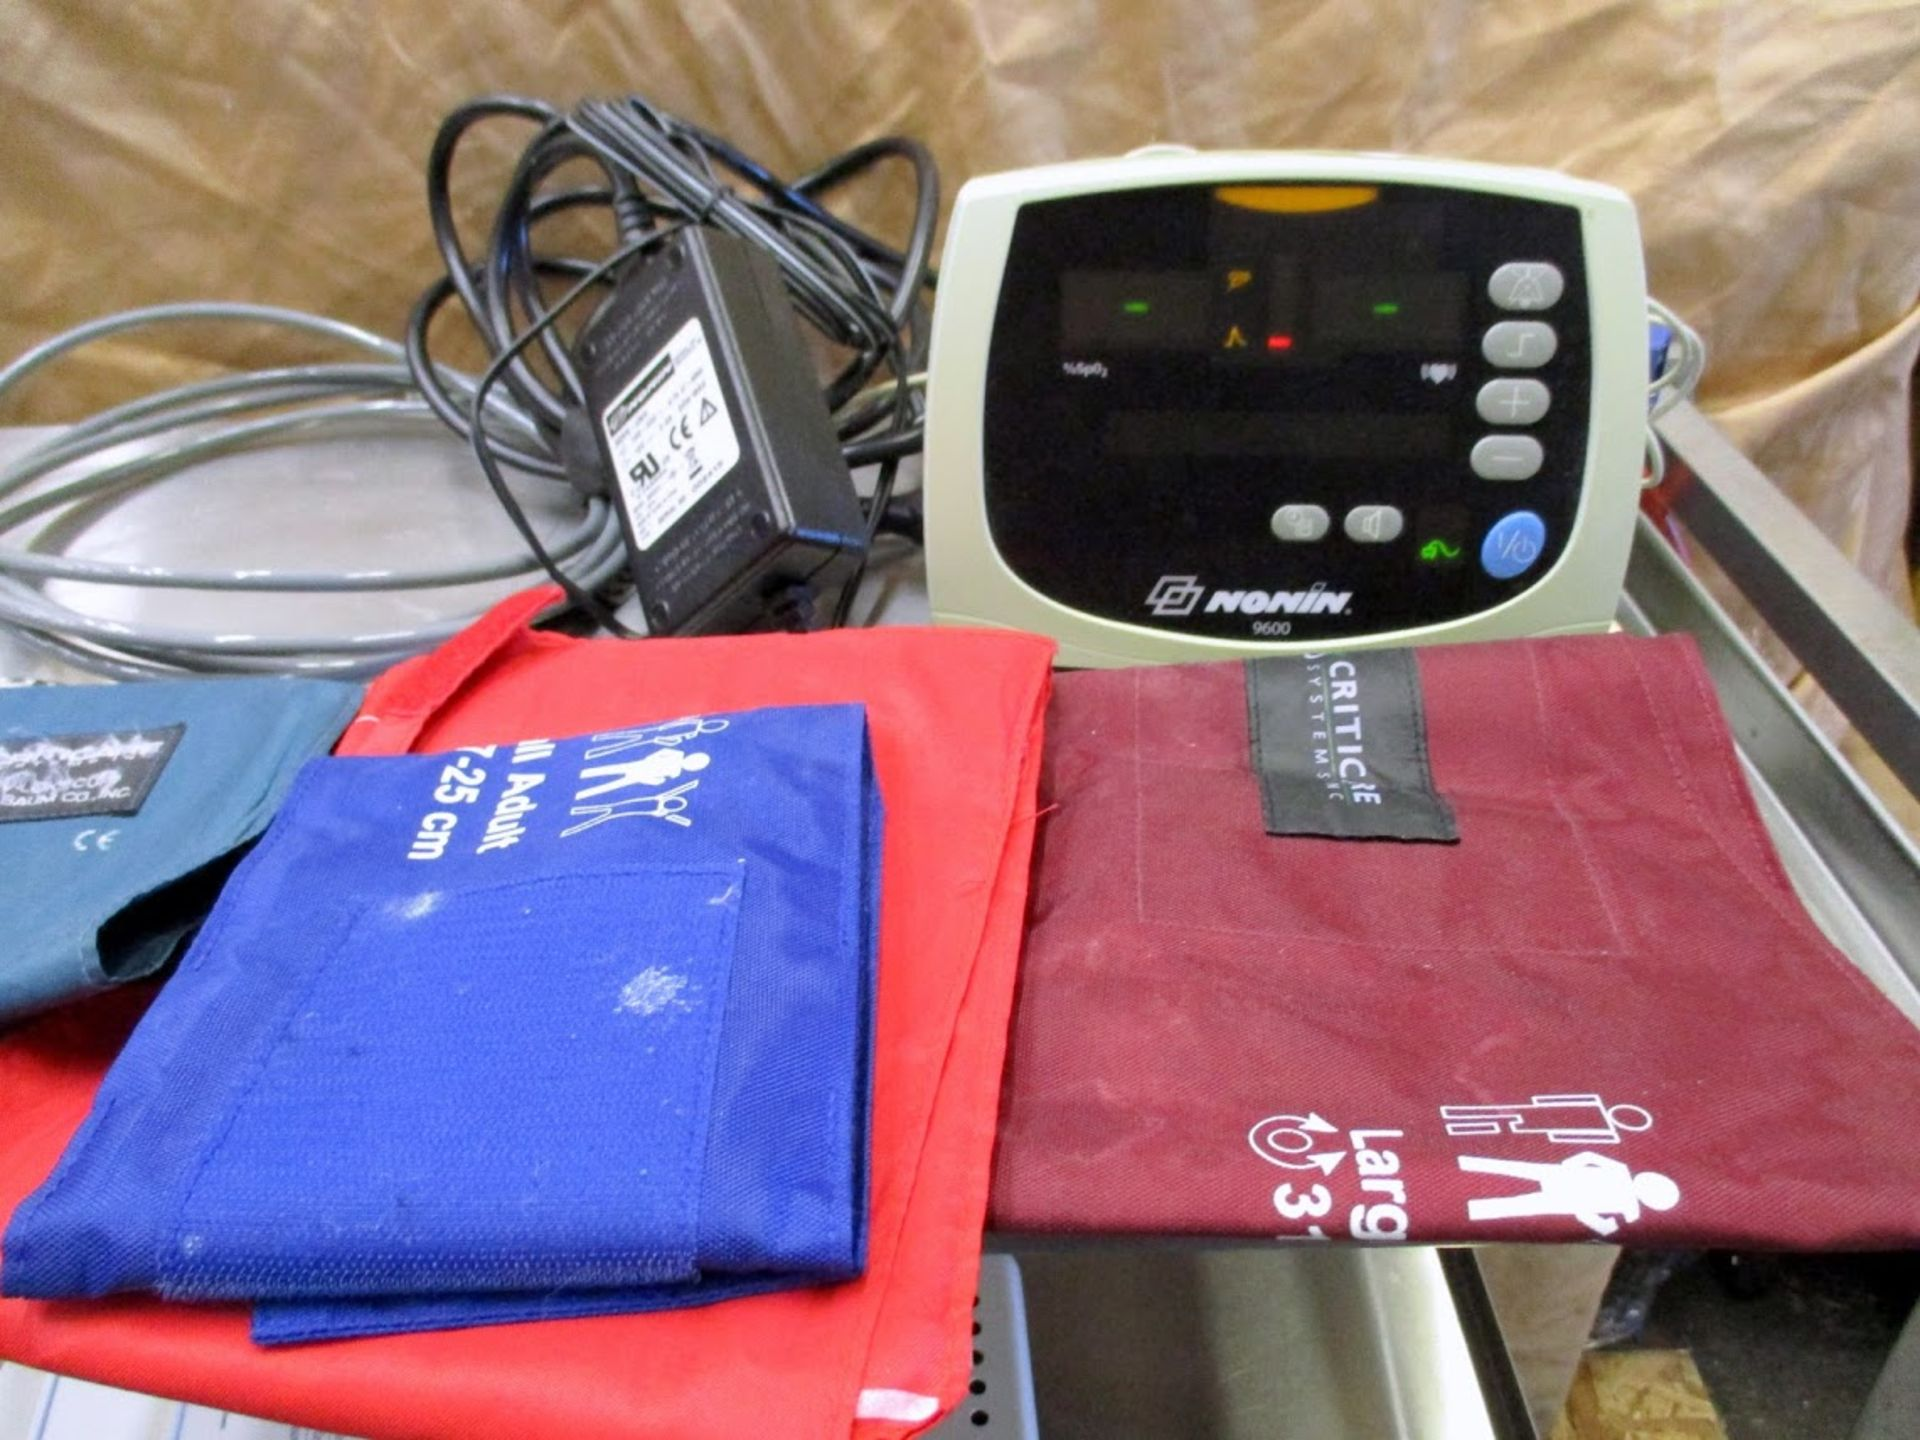 Nonin 9600 Pulse Oximeter with blood pressure cuffs. 115V - Image 5 of 7